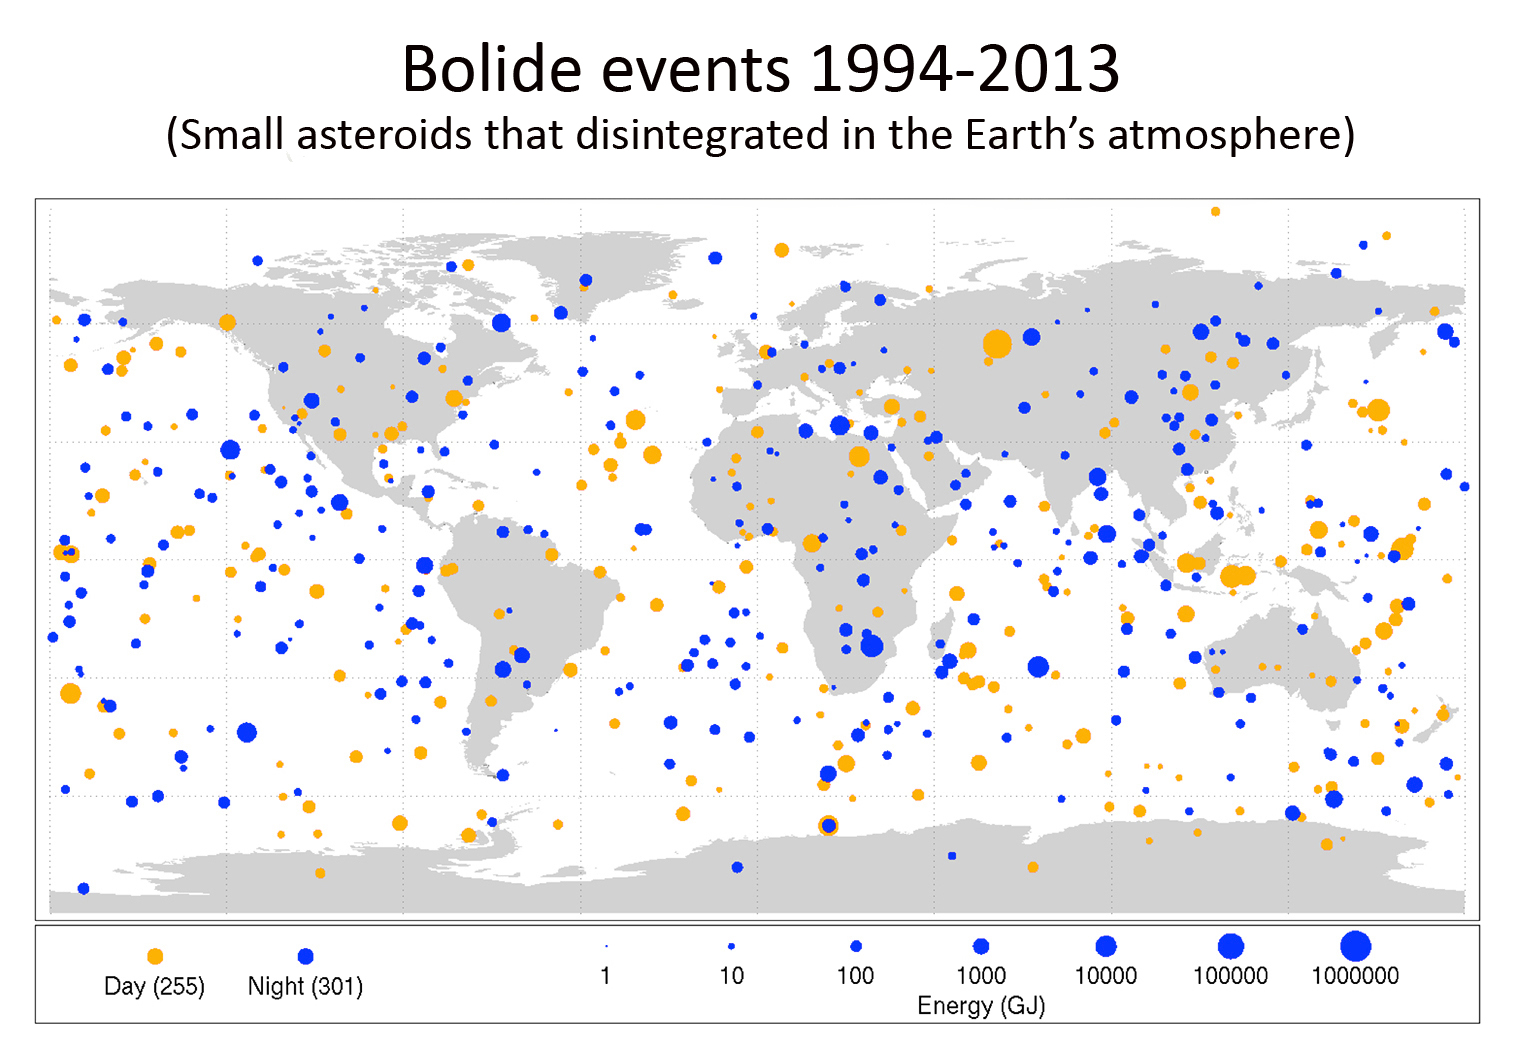 Map of Bolide Impacts from 1994 to 2013